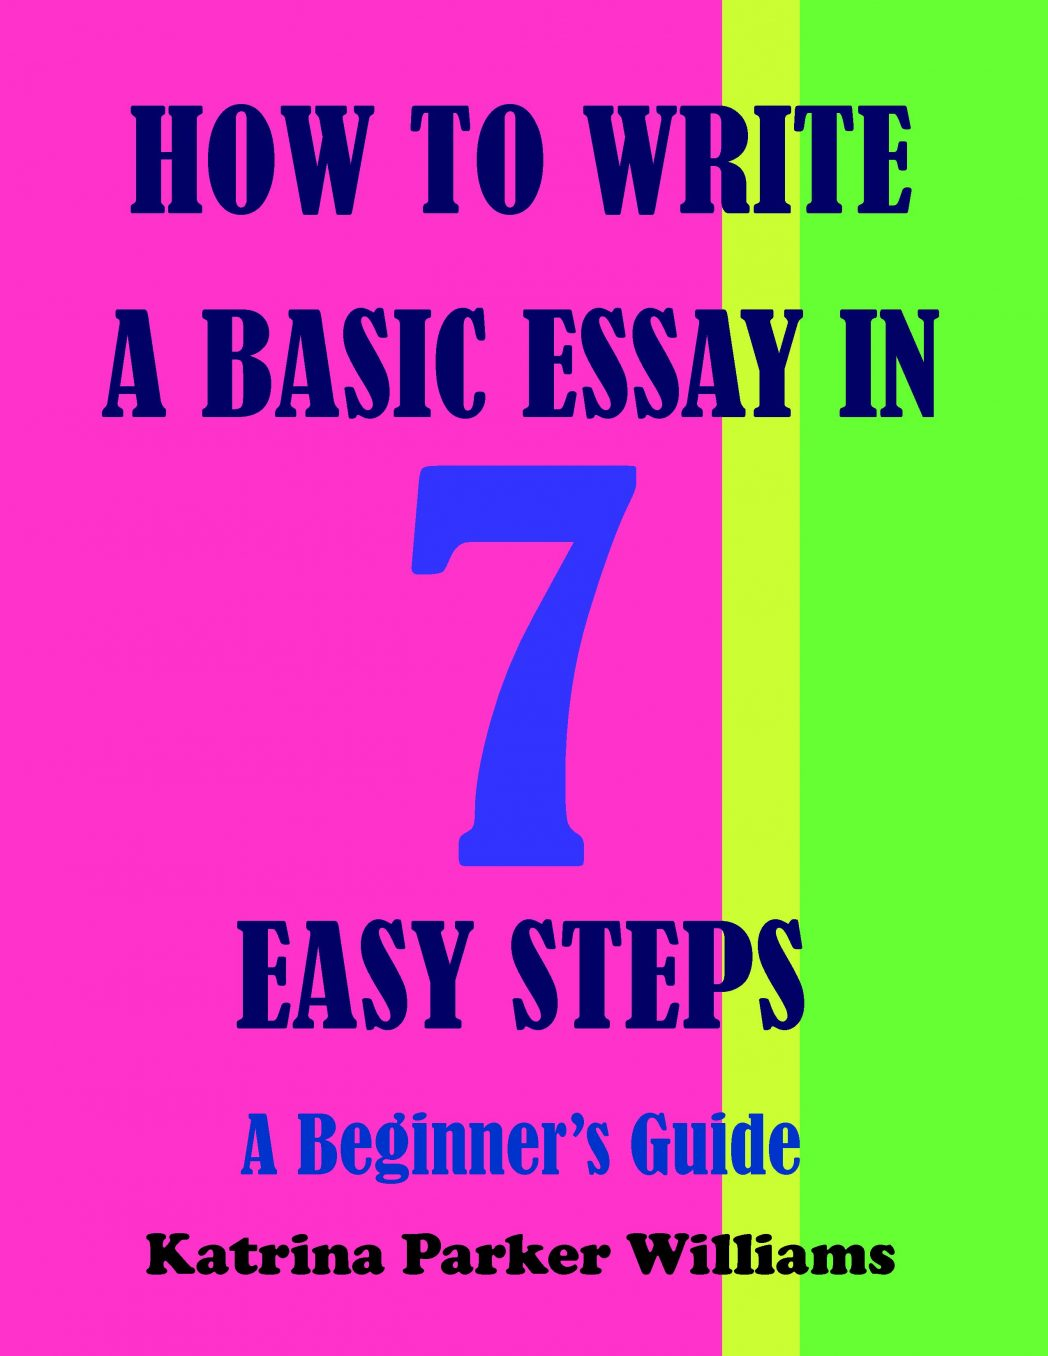 014 Essay Help Easy Books To Improve Your Writing How Write Basic In Seven With 1048x1356 An About Book Marvelous A Analytical Comparing Two You Haven't Read Argumentative Full